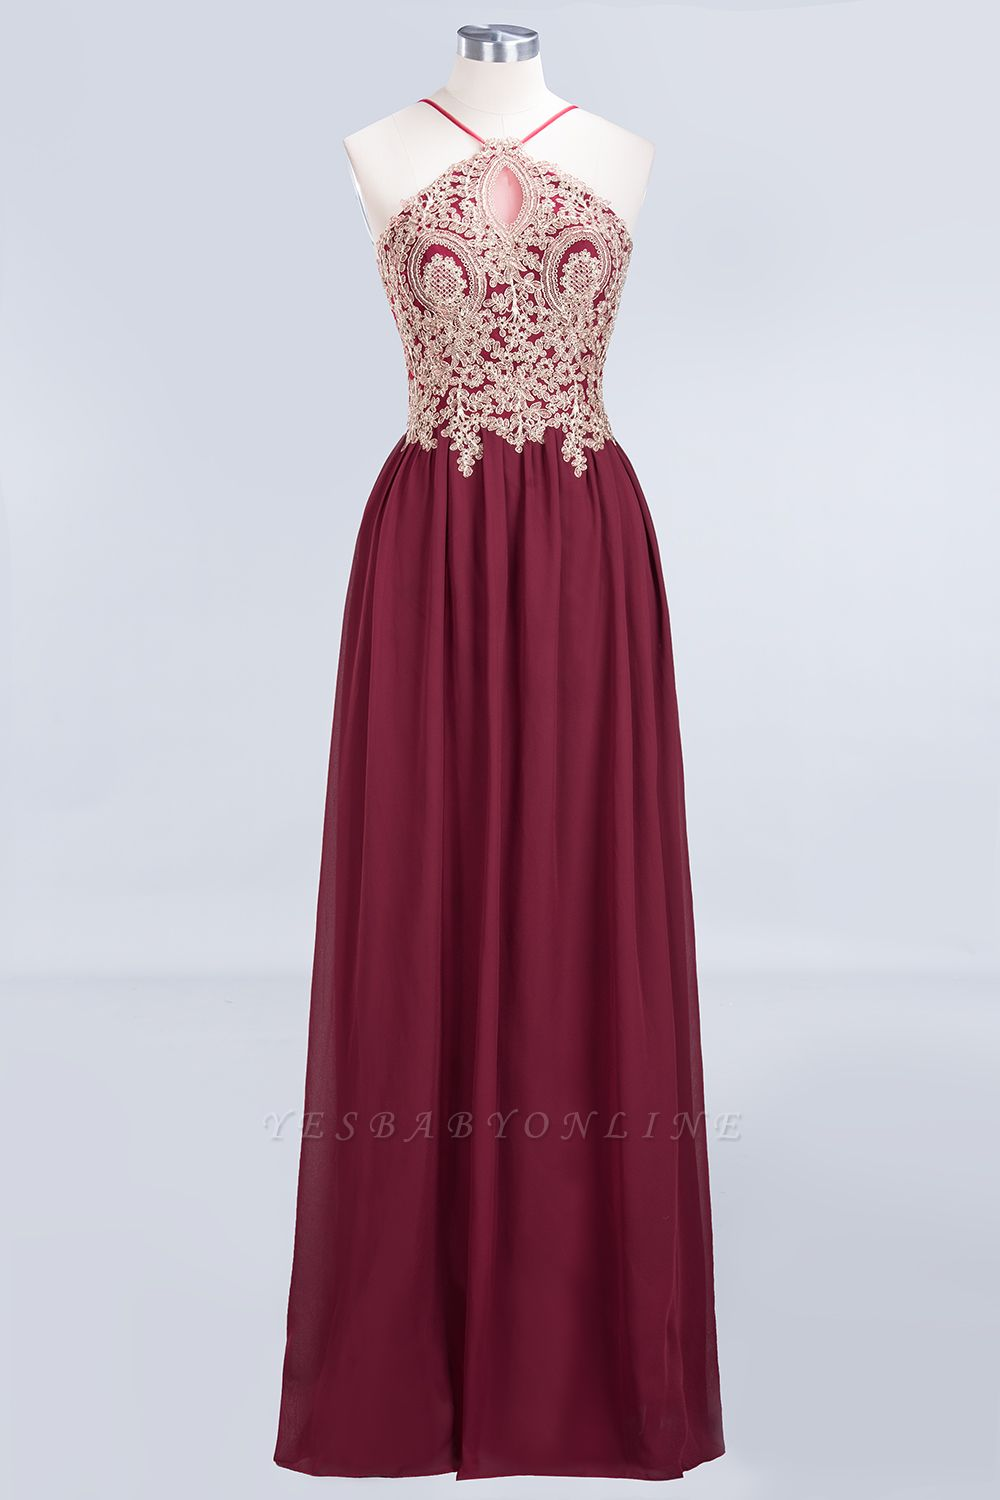 A-Line Spaghetti-Straps Sleeveless Backless Floor-Length  Bridesmaid Dress with Appliques